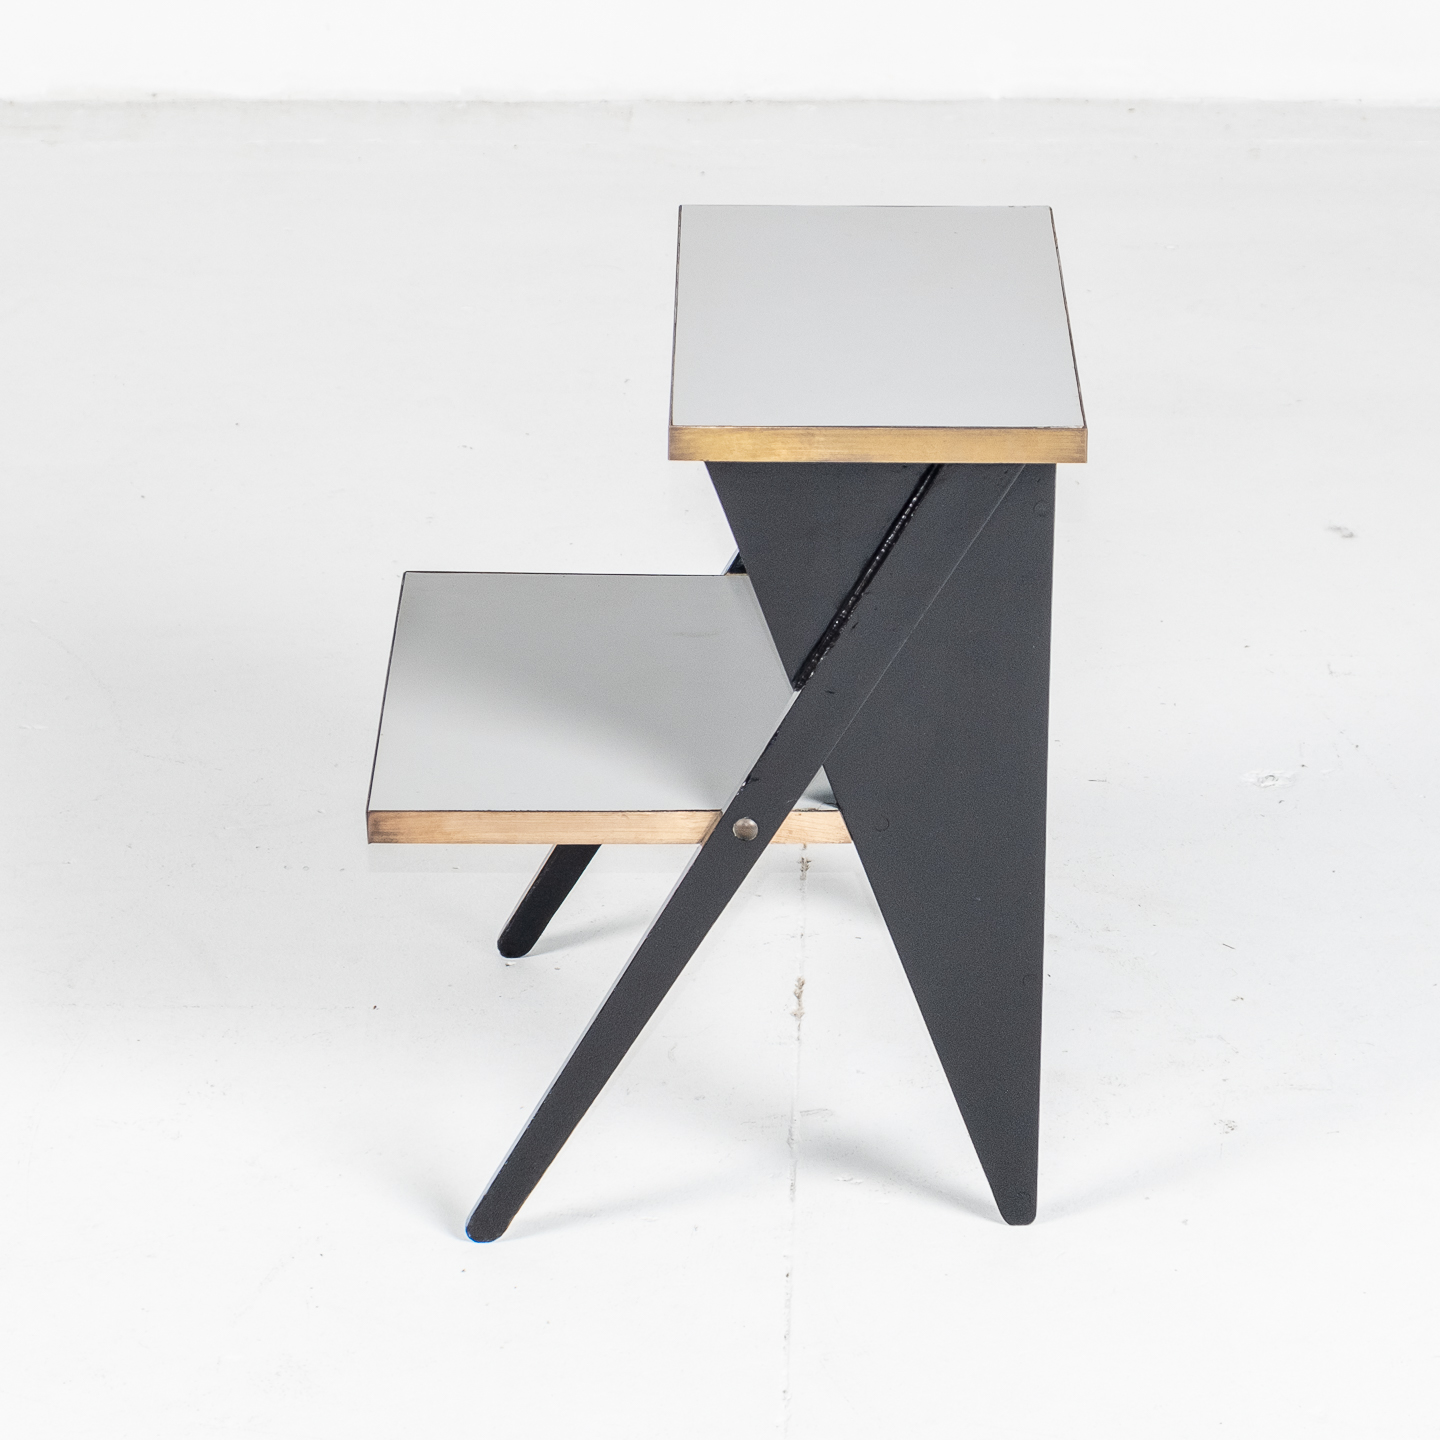 Side Table In The Style Of De Stijl In Brass And Laminate With Ebonised Finish, 1930s, The Netherlands303